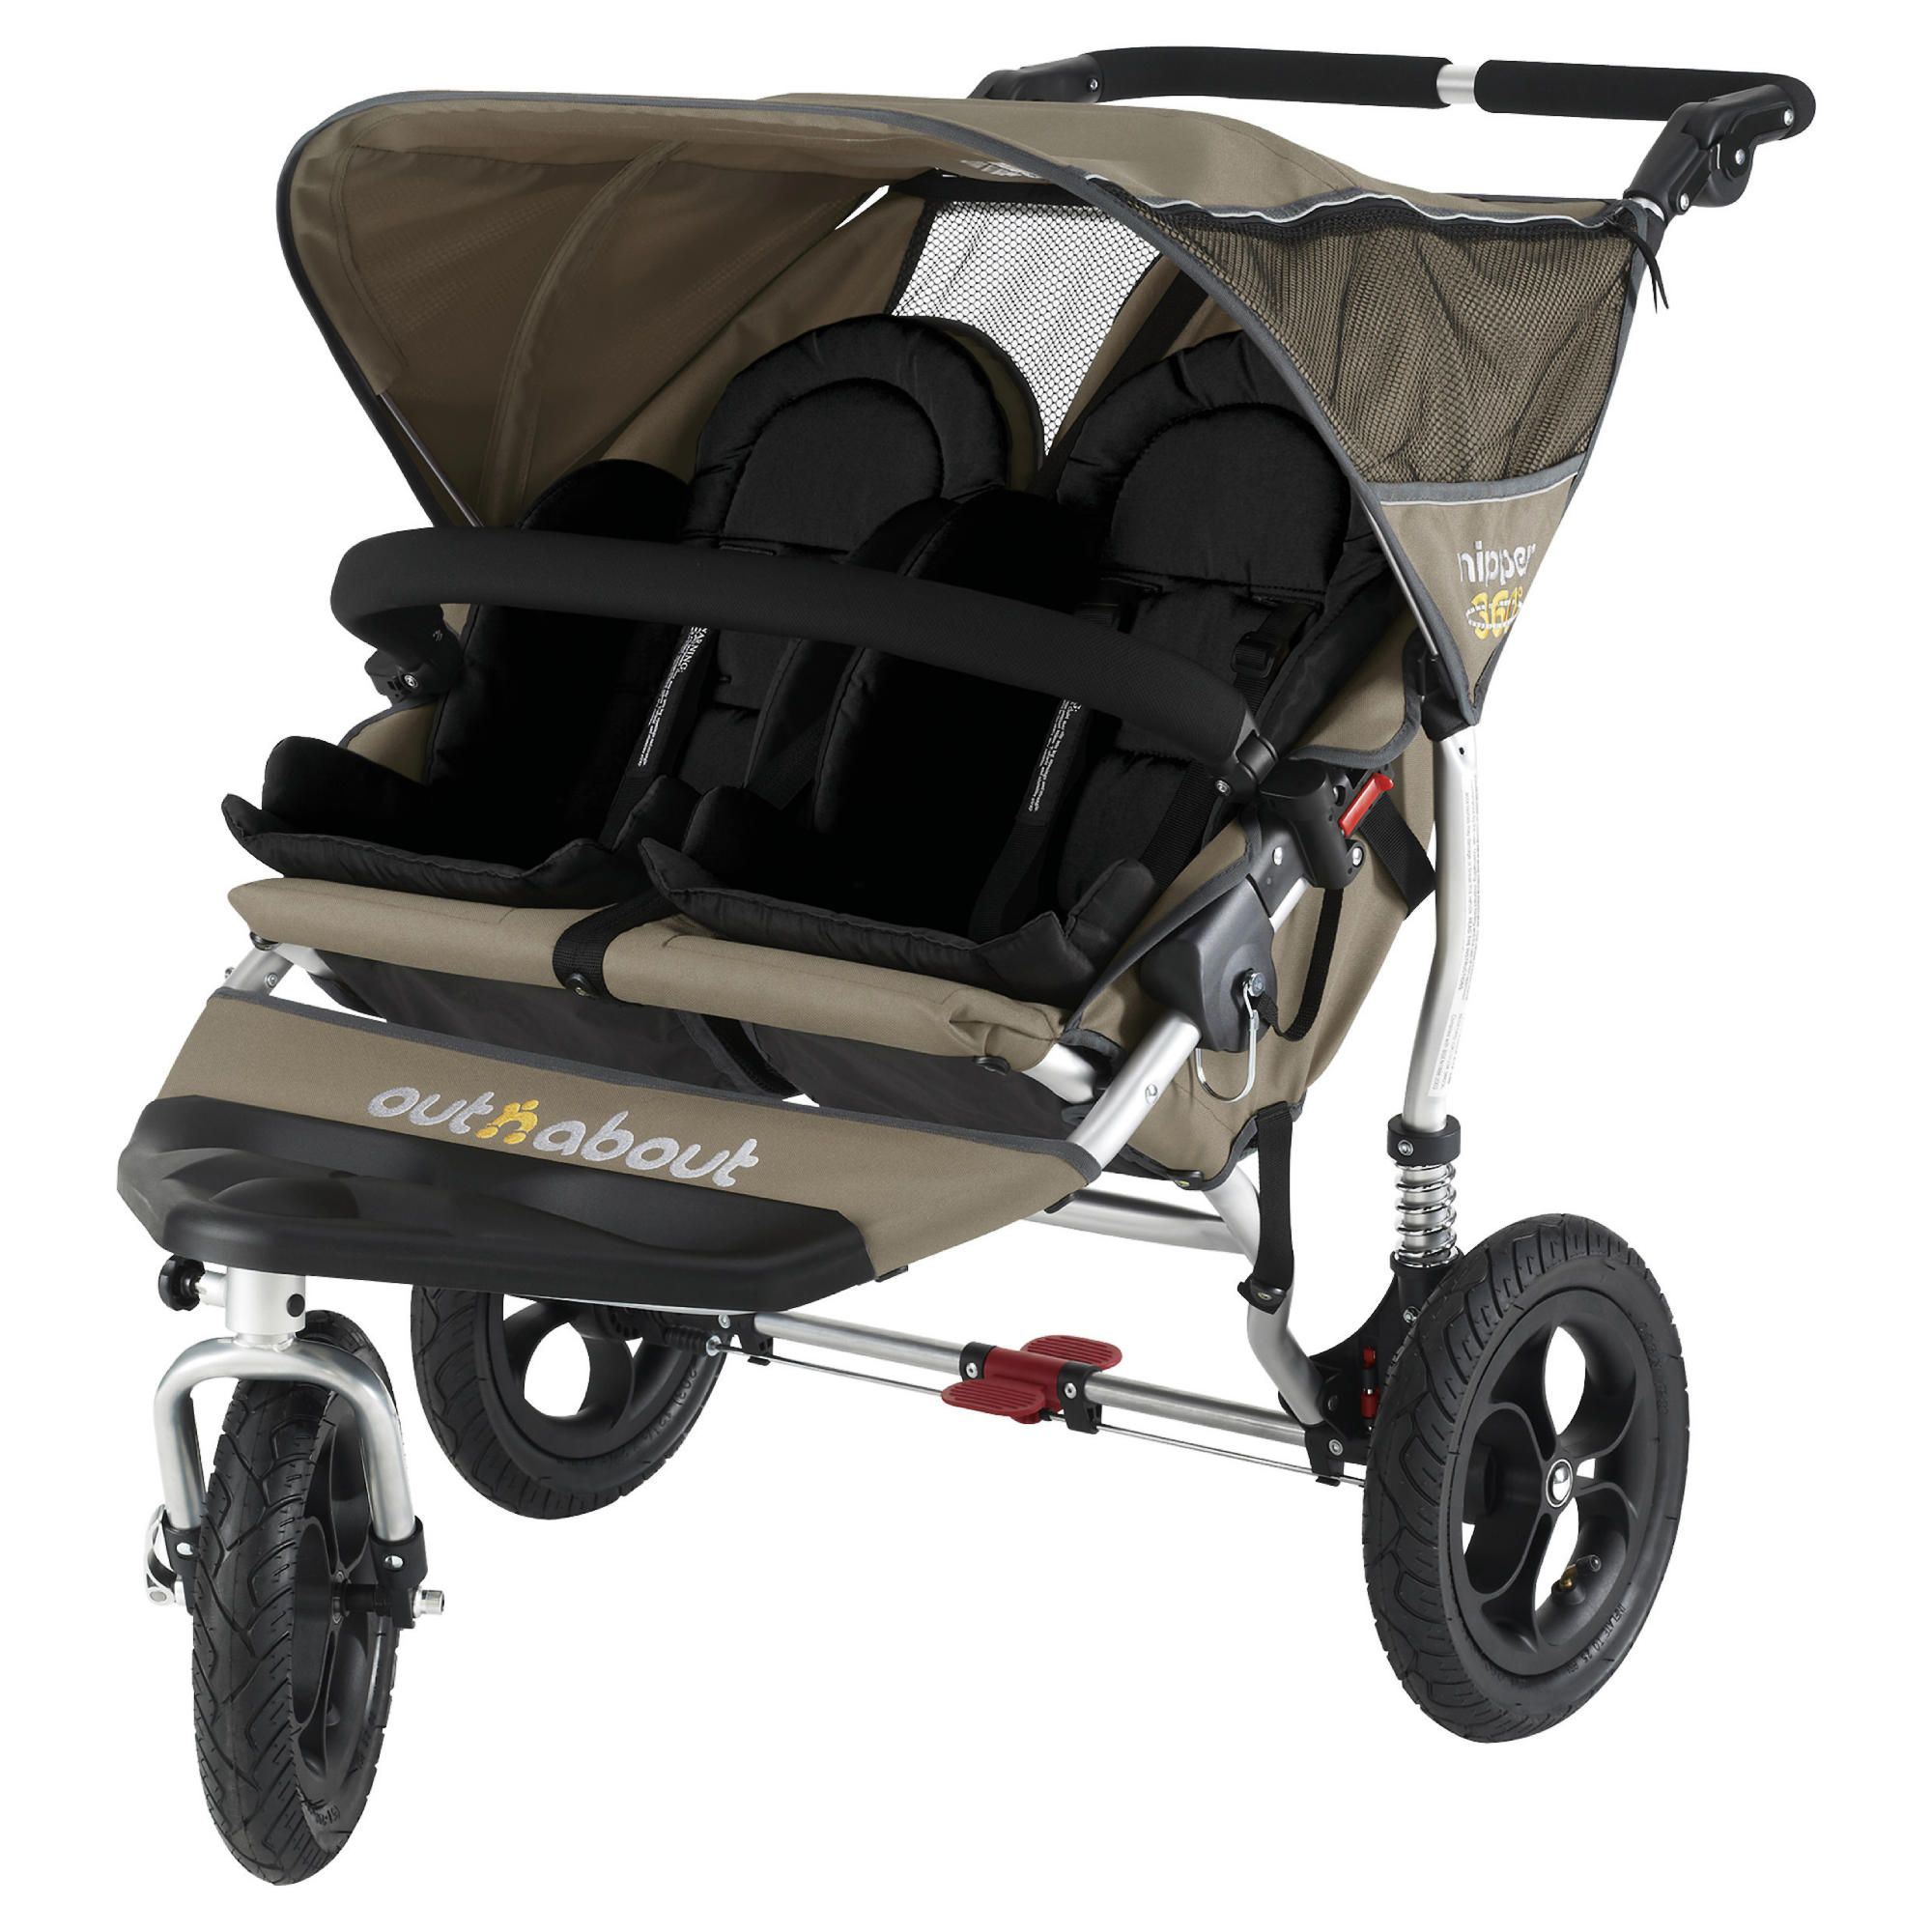 Out 'n' About V2 Nipper 360, Double 3 wheeler Pushchair, Carmel at Tescos Direct